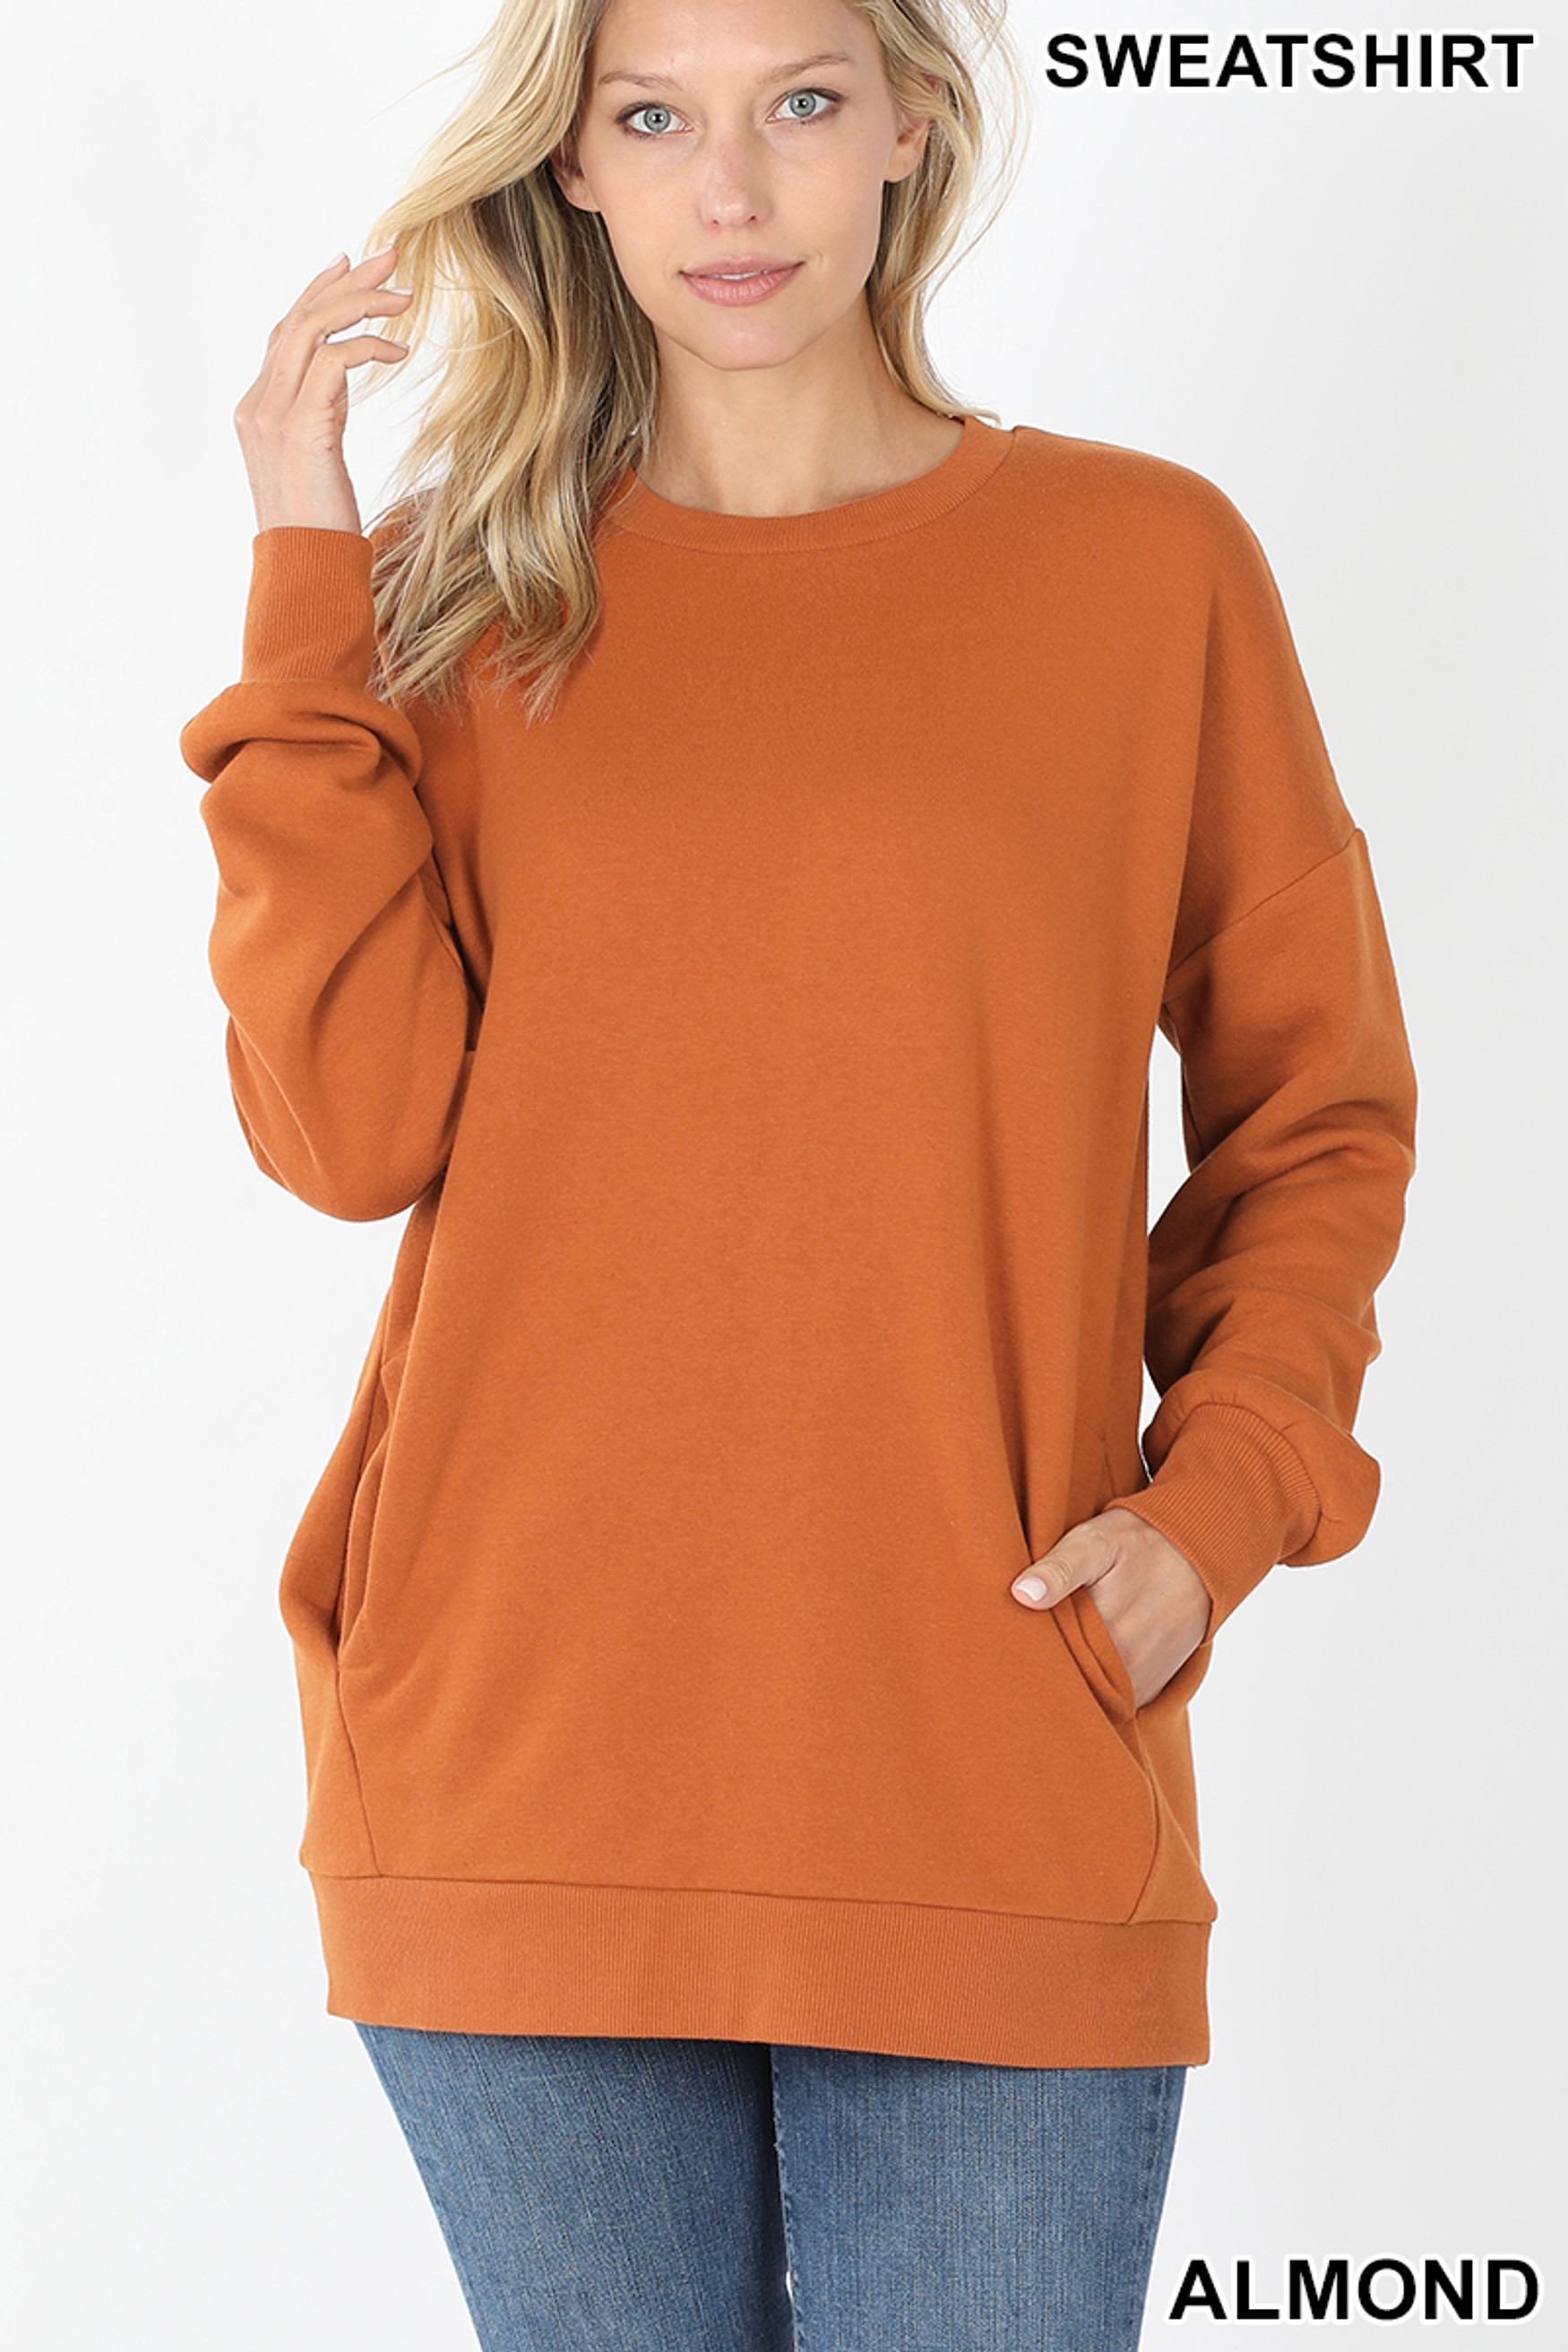 Front image of Almond Round Crew Neck Sweatshirt with Side Pockets